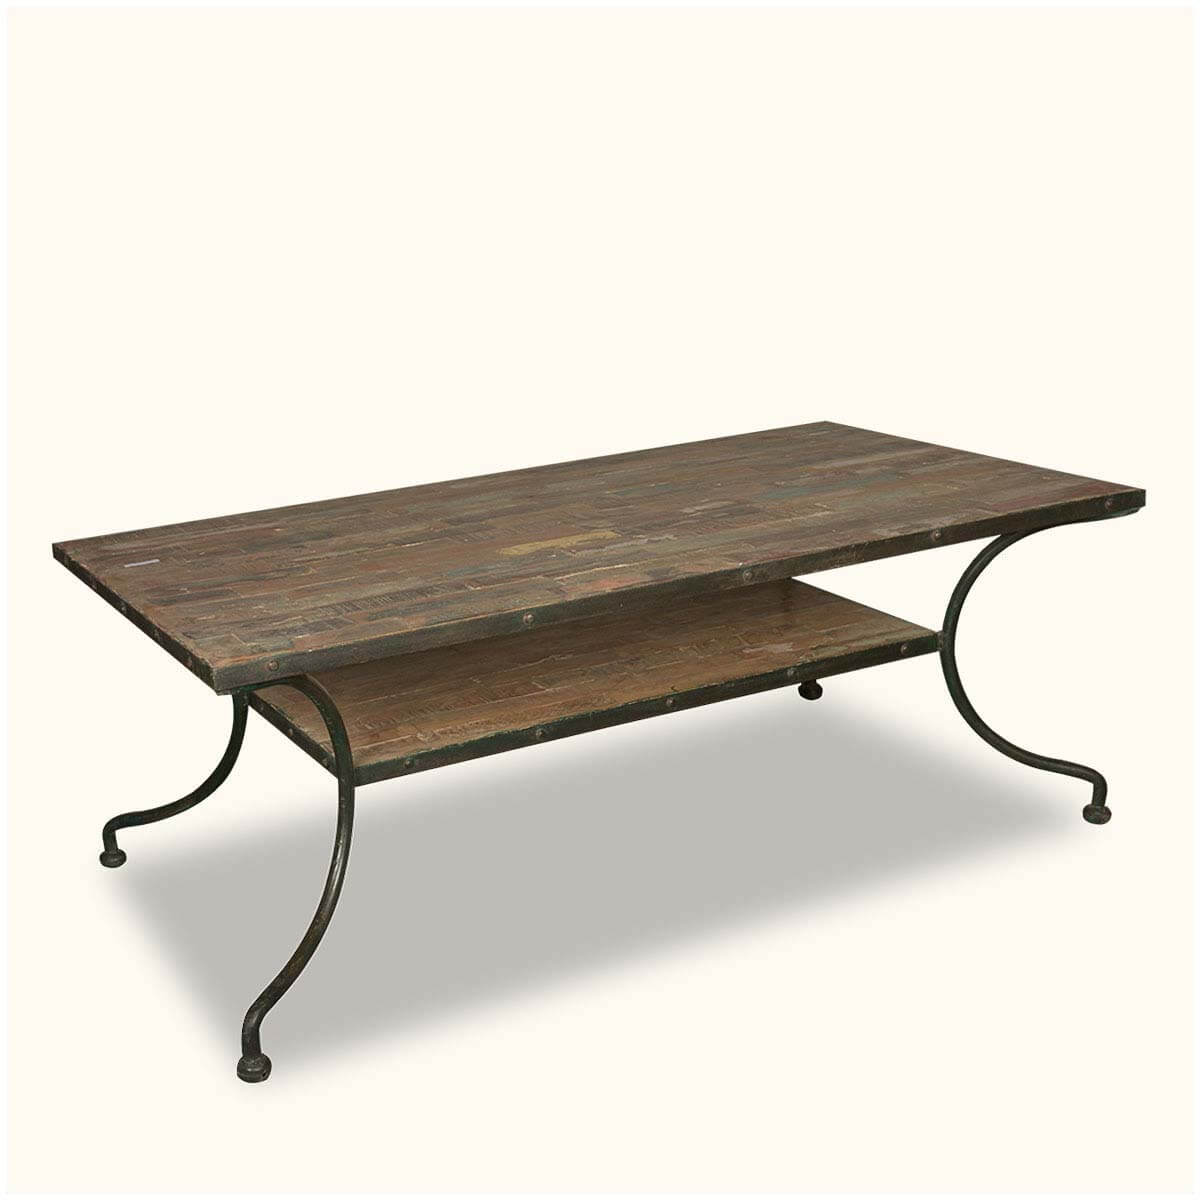 Reclaimed Wood Iron Industrial 2 Tier Rustic Coffee Table